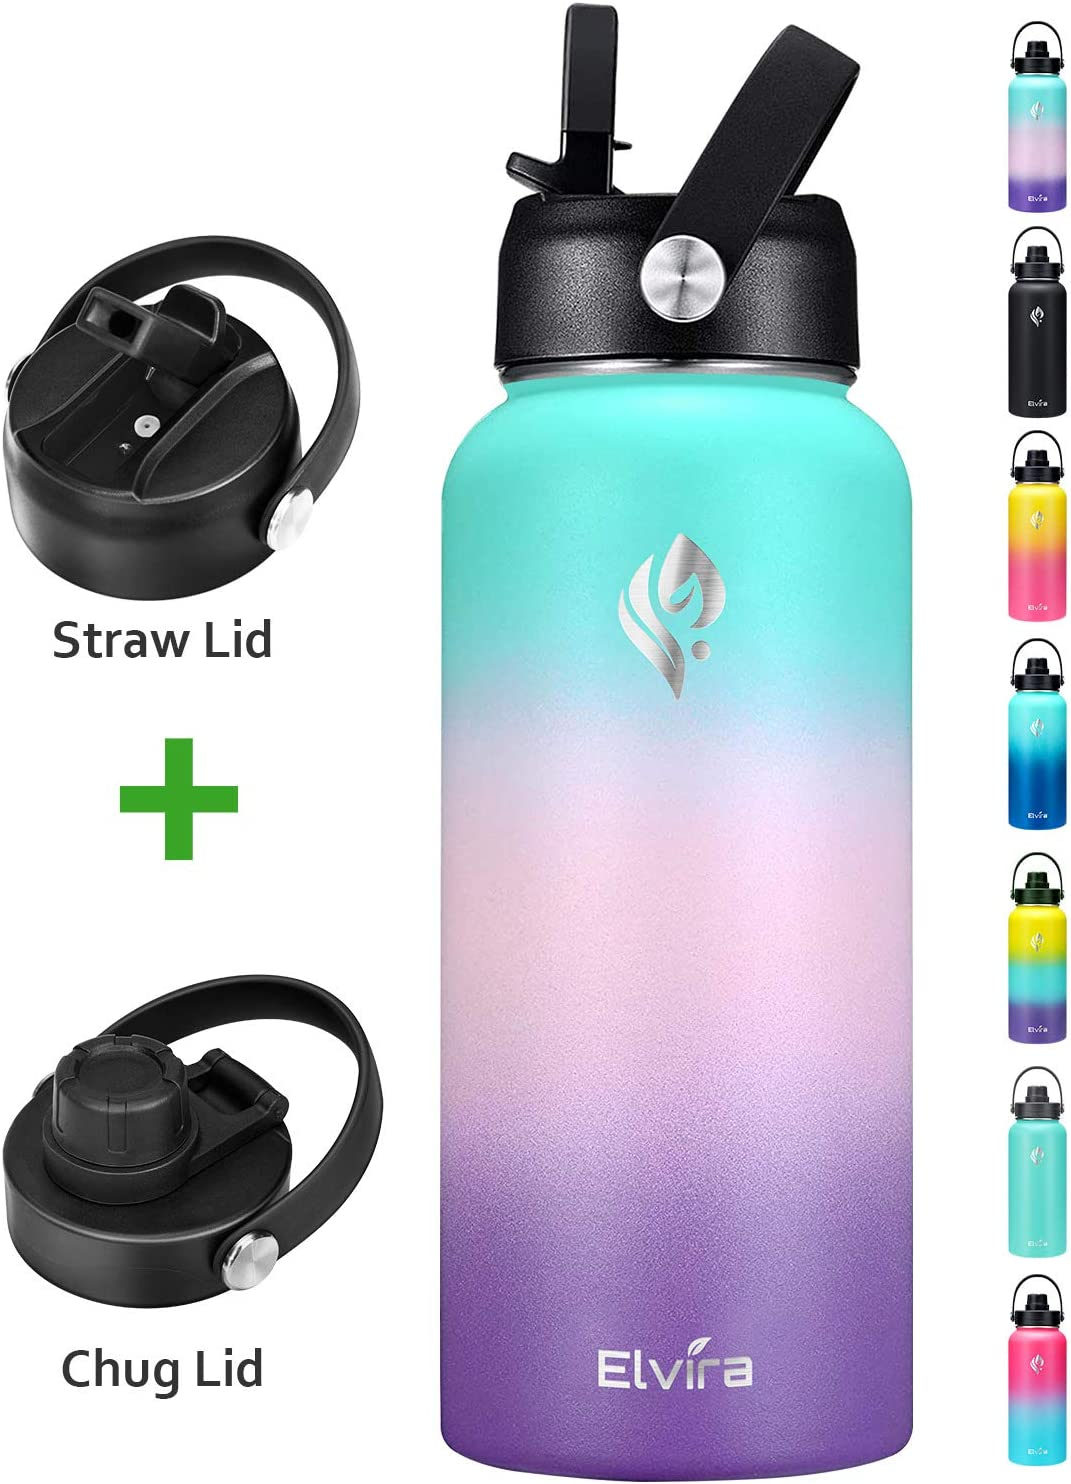 Elvira 32oz Vacuum Insulated Stainless Steel Water Bottle with Straw & Spout Lids, Double Wall Sweat-proof BPA Free Wide Mouth to Keep Beverages Cold For 48 Hrs or Hot For 24 Hrs